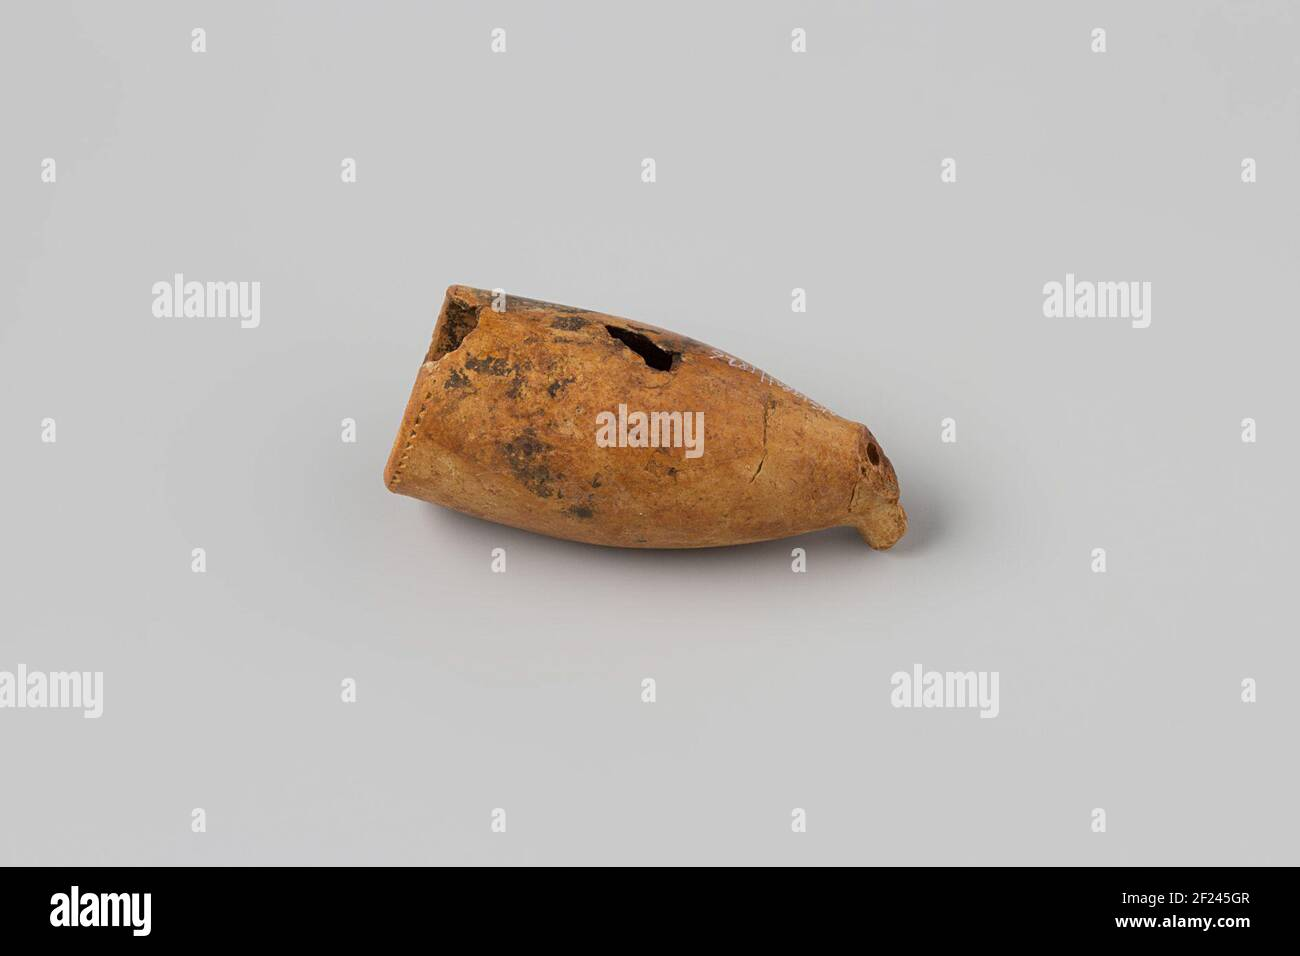 Pijpenkop from the wreck of the East India Hollandia.Pipe, Bowl, Healmar: Crowned 47; Fragment, 2HSM1.2. Stock Photo